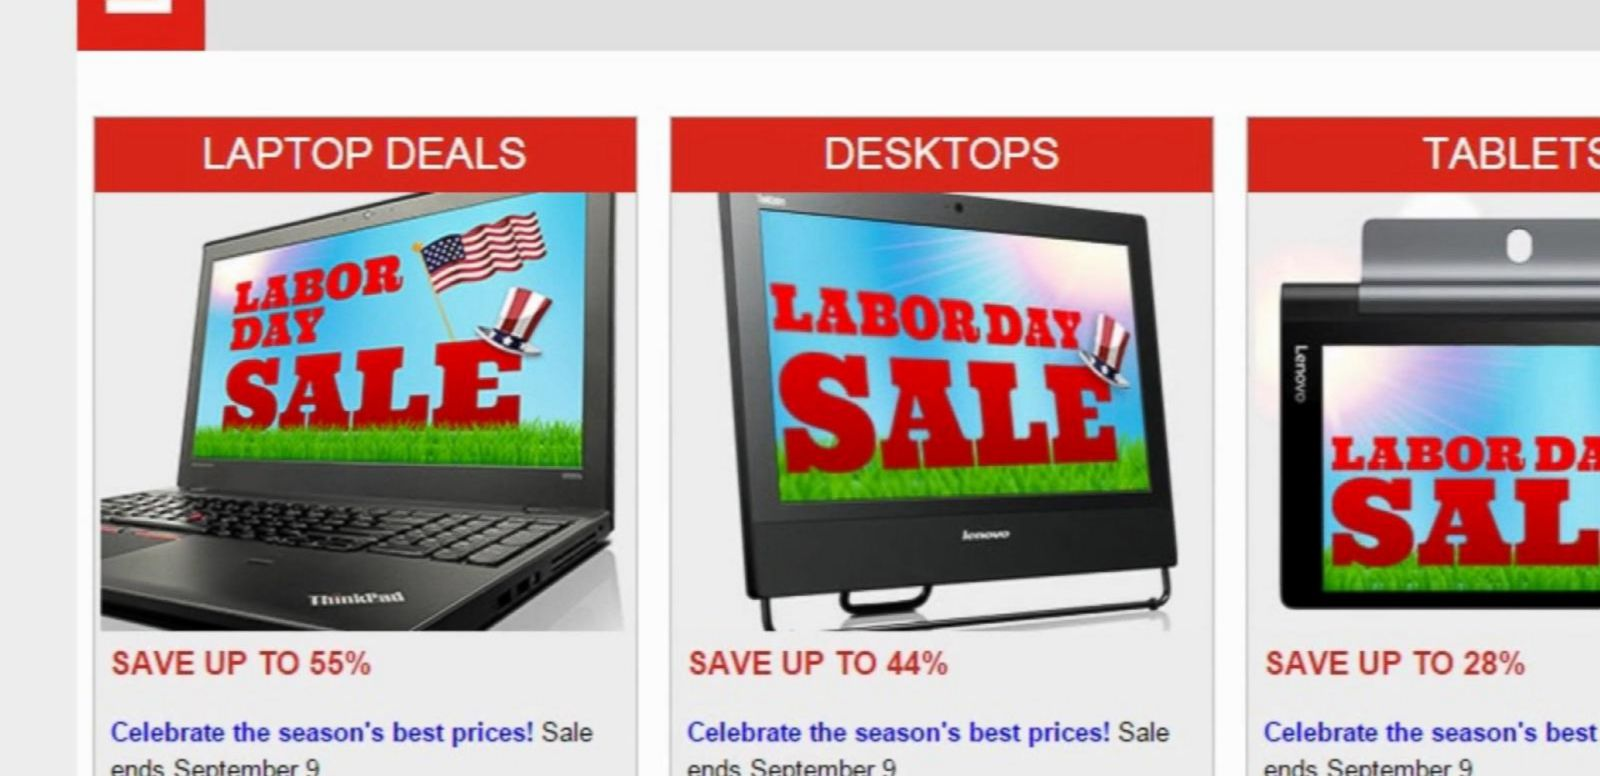 VIDEO: Check Out These Labor Day Deals